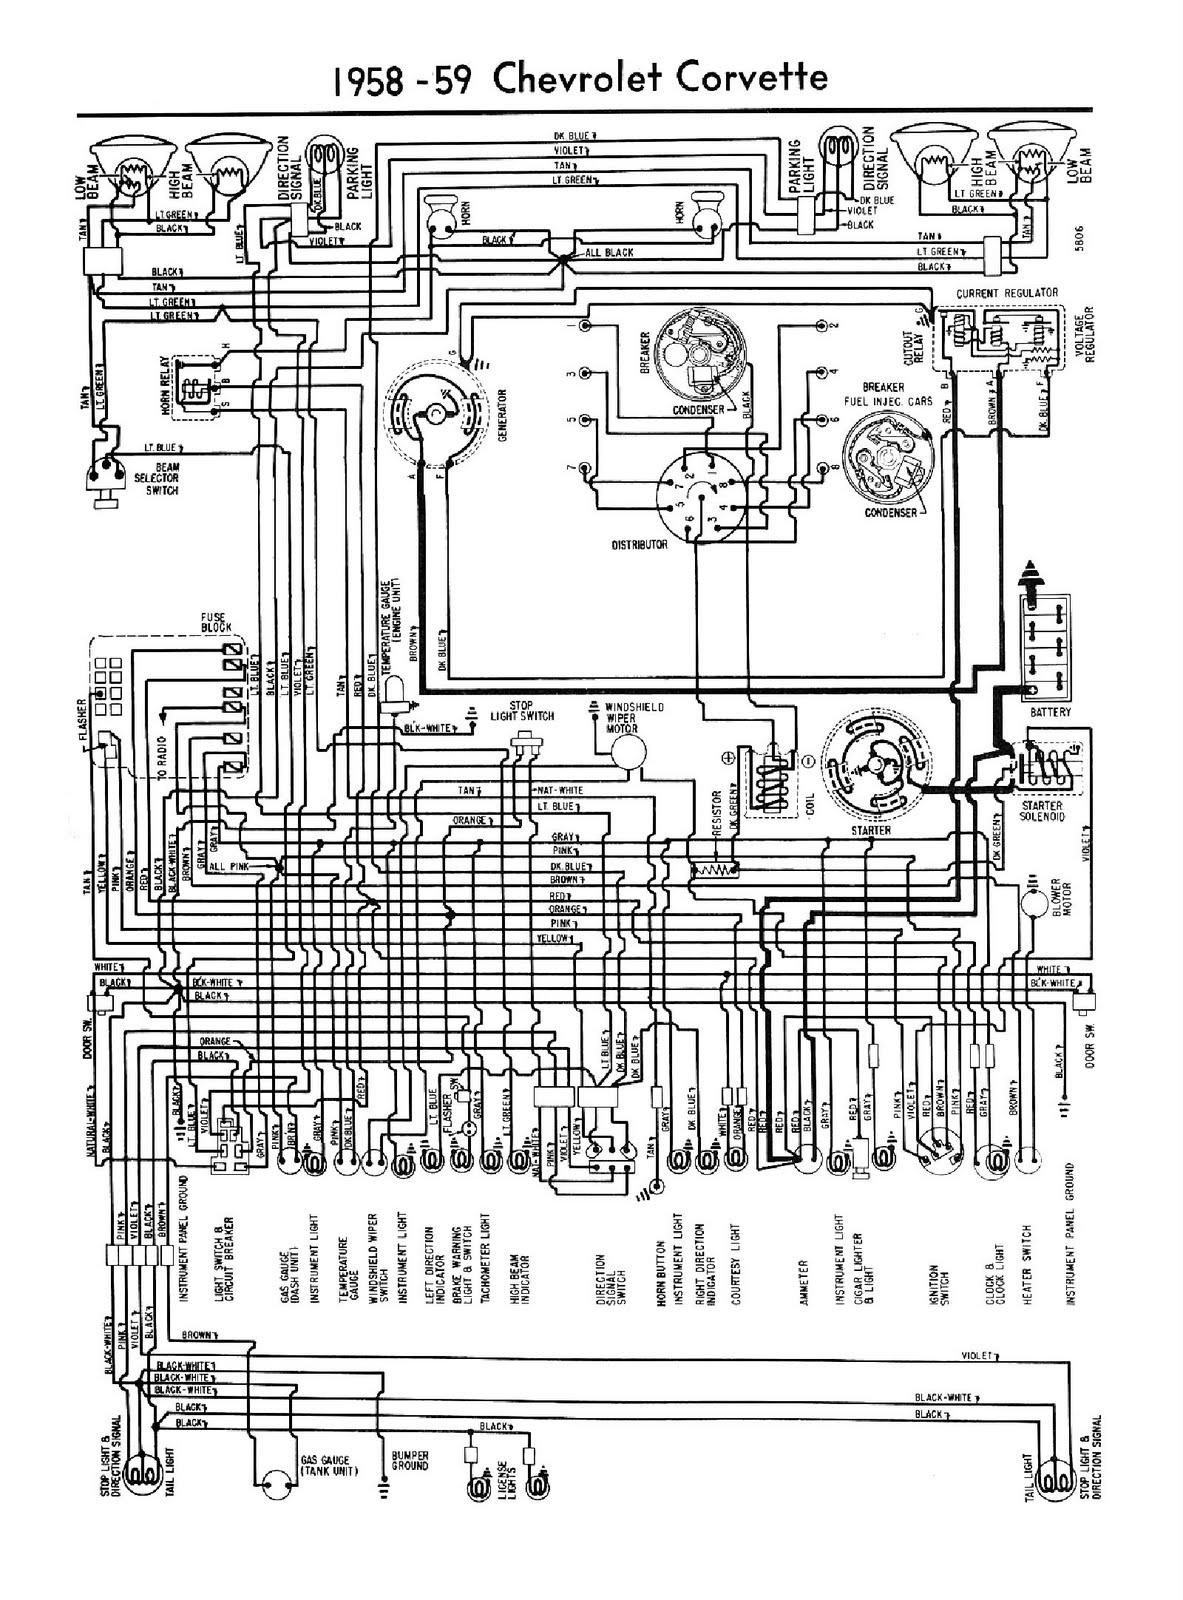 Fuse Box Diagram 2005 Gmc Envoy V8 Reinvent Your Wiring 2004 Slt All Free Auto 1958 1959 Chevrolet Corvette Under